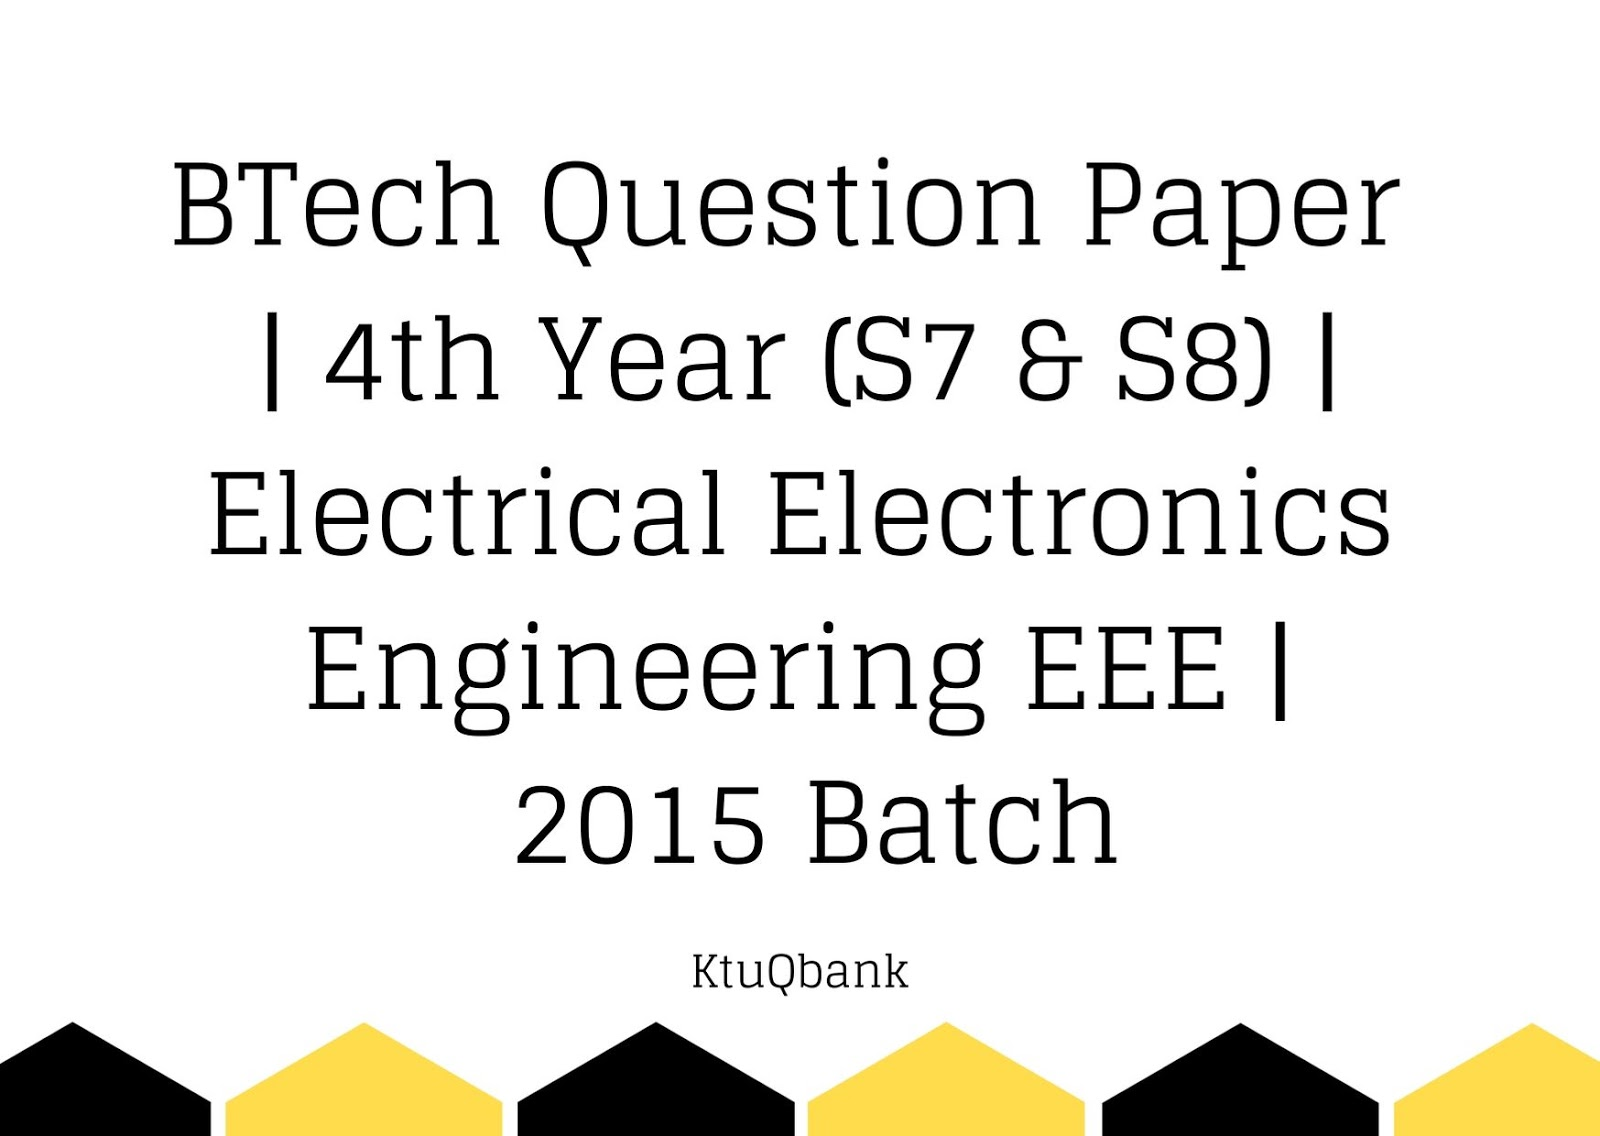 BTech Question Paper | 4th Year (S7 & S8) | Electrical Electronics Engineering | 2015 Batch